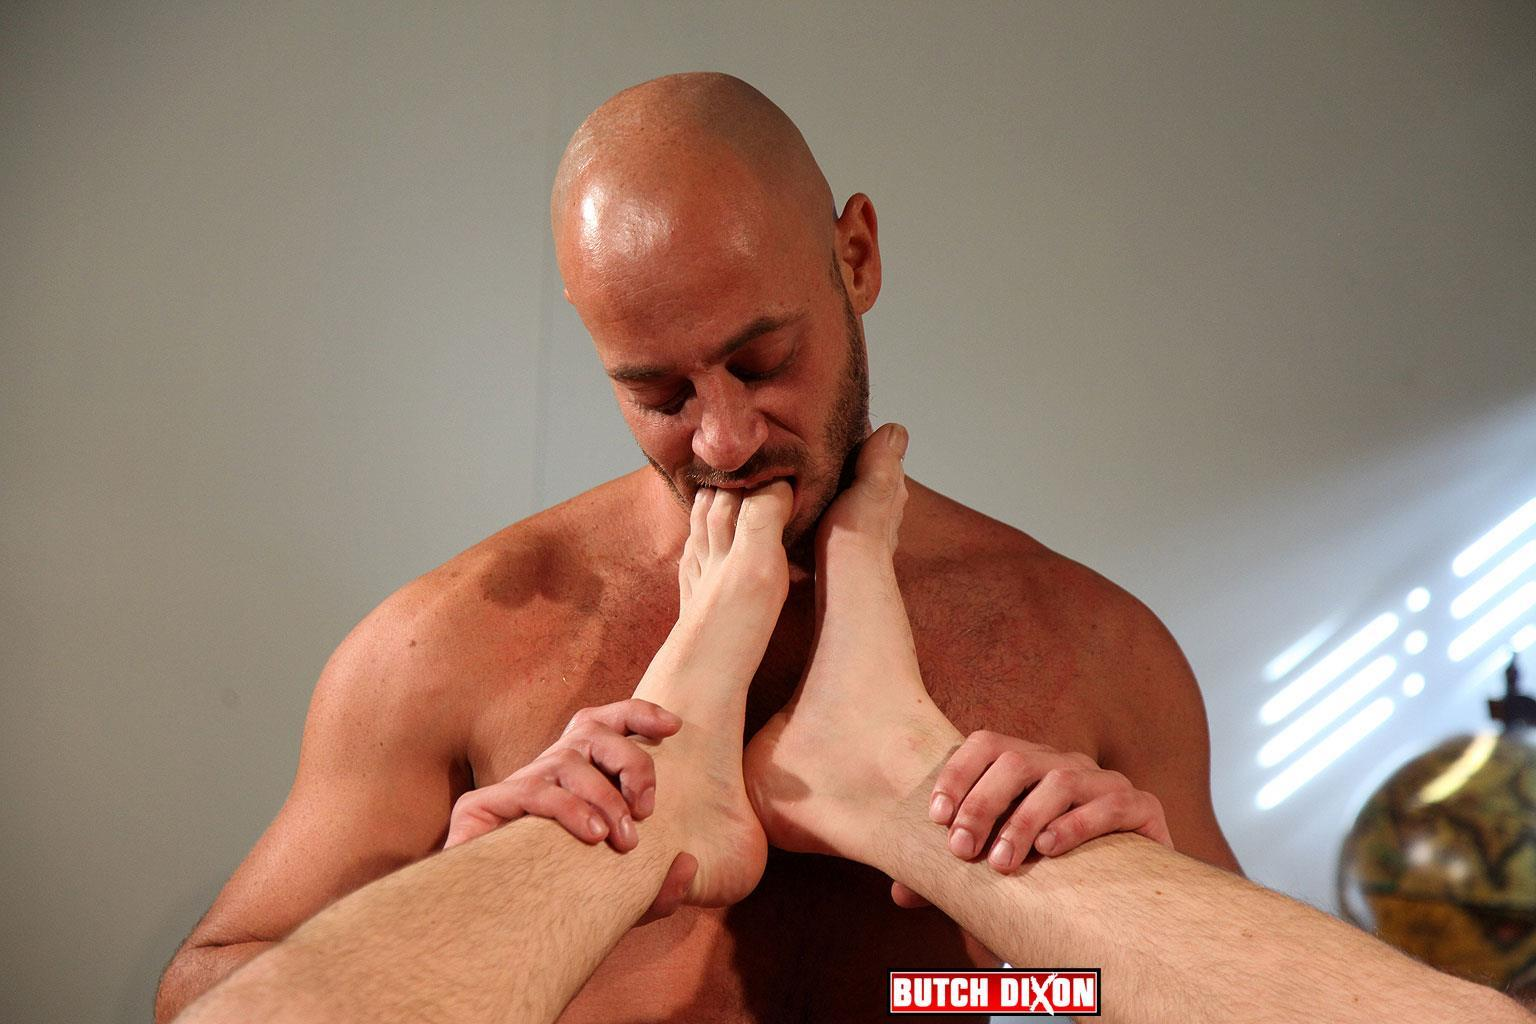 Butch Dixon Alfie Stone and Bruno Fox Big Cock Masculine Gays Fucking Amateur Gay Porn 09 Freaky Amateur Hairy Masculine Men Fucking With Thick Cocks